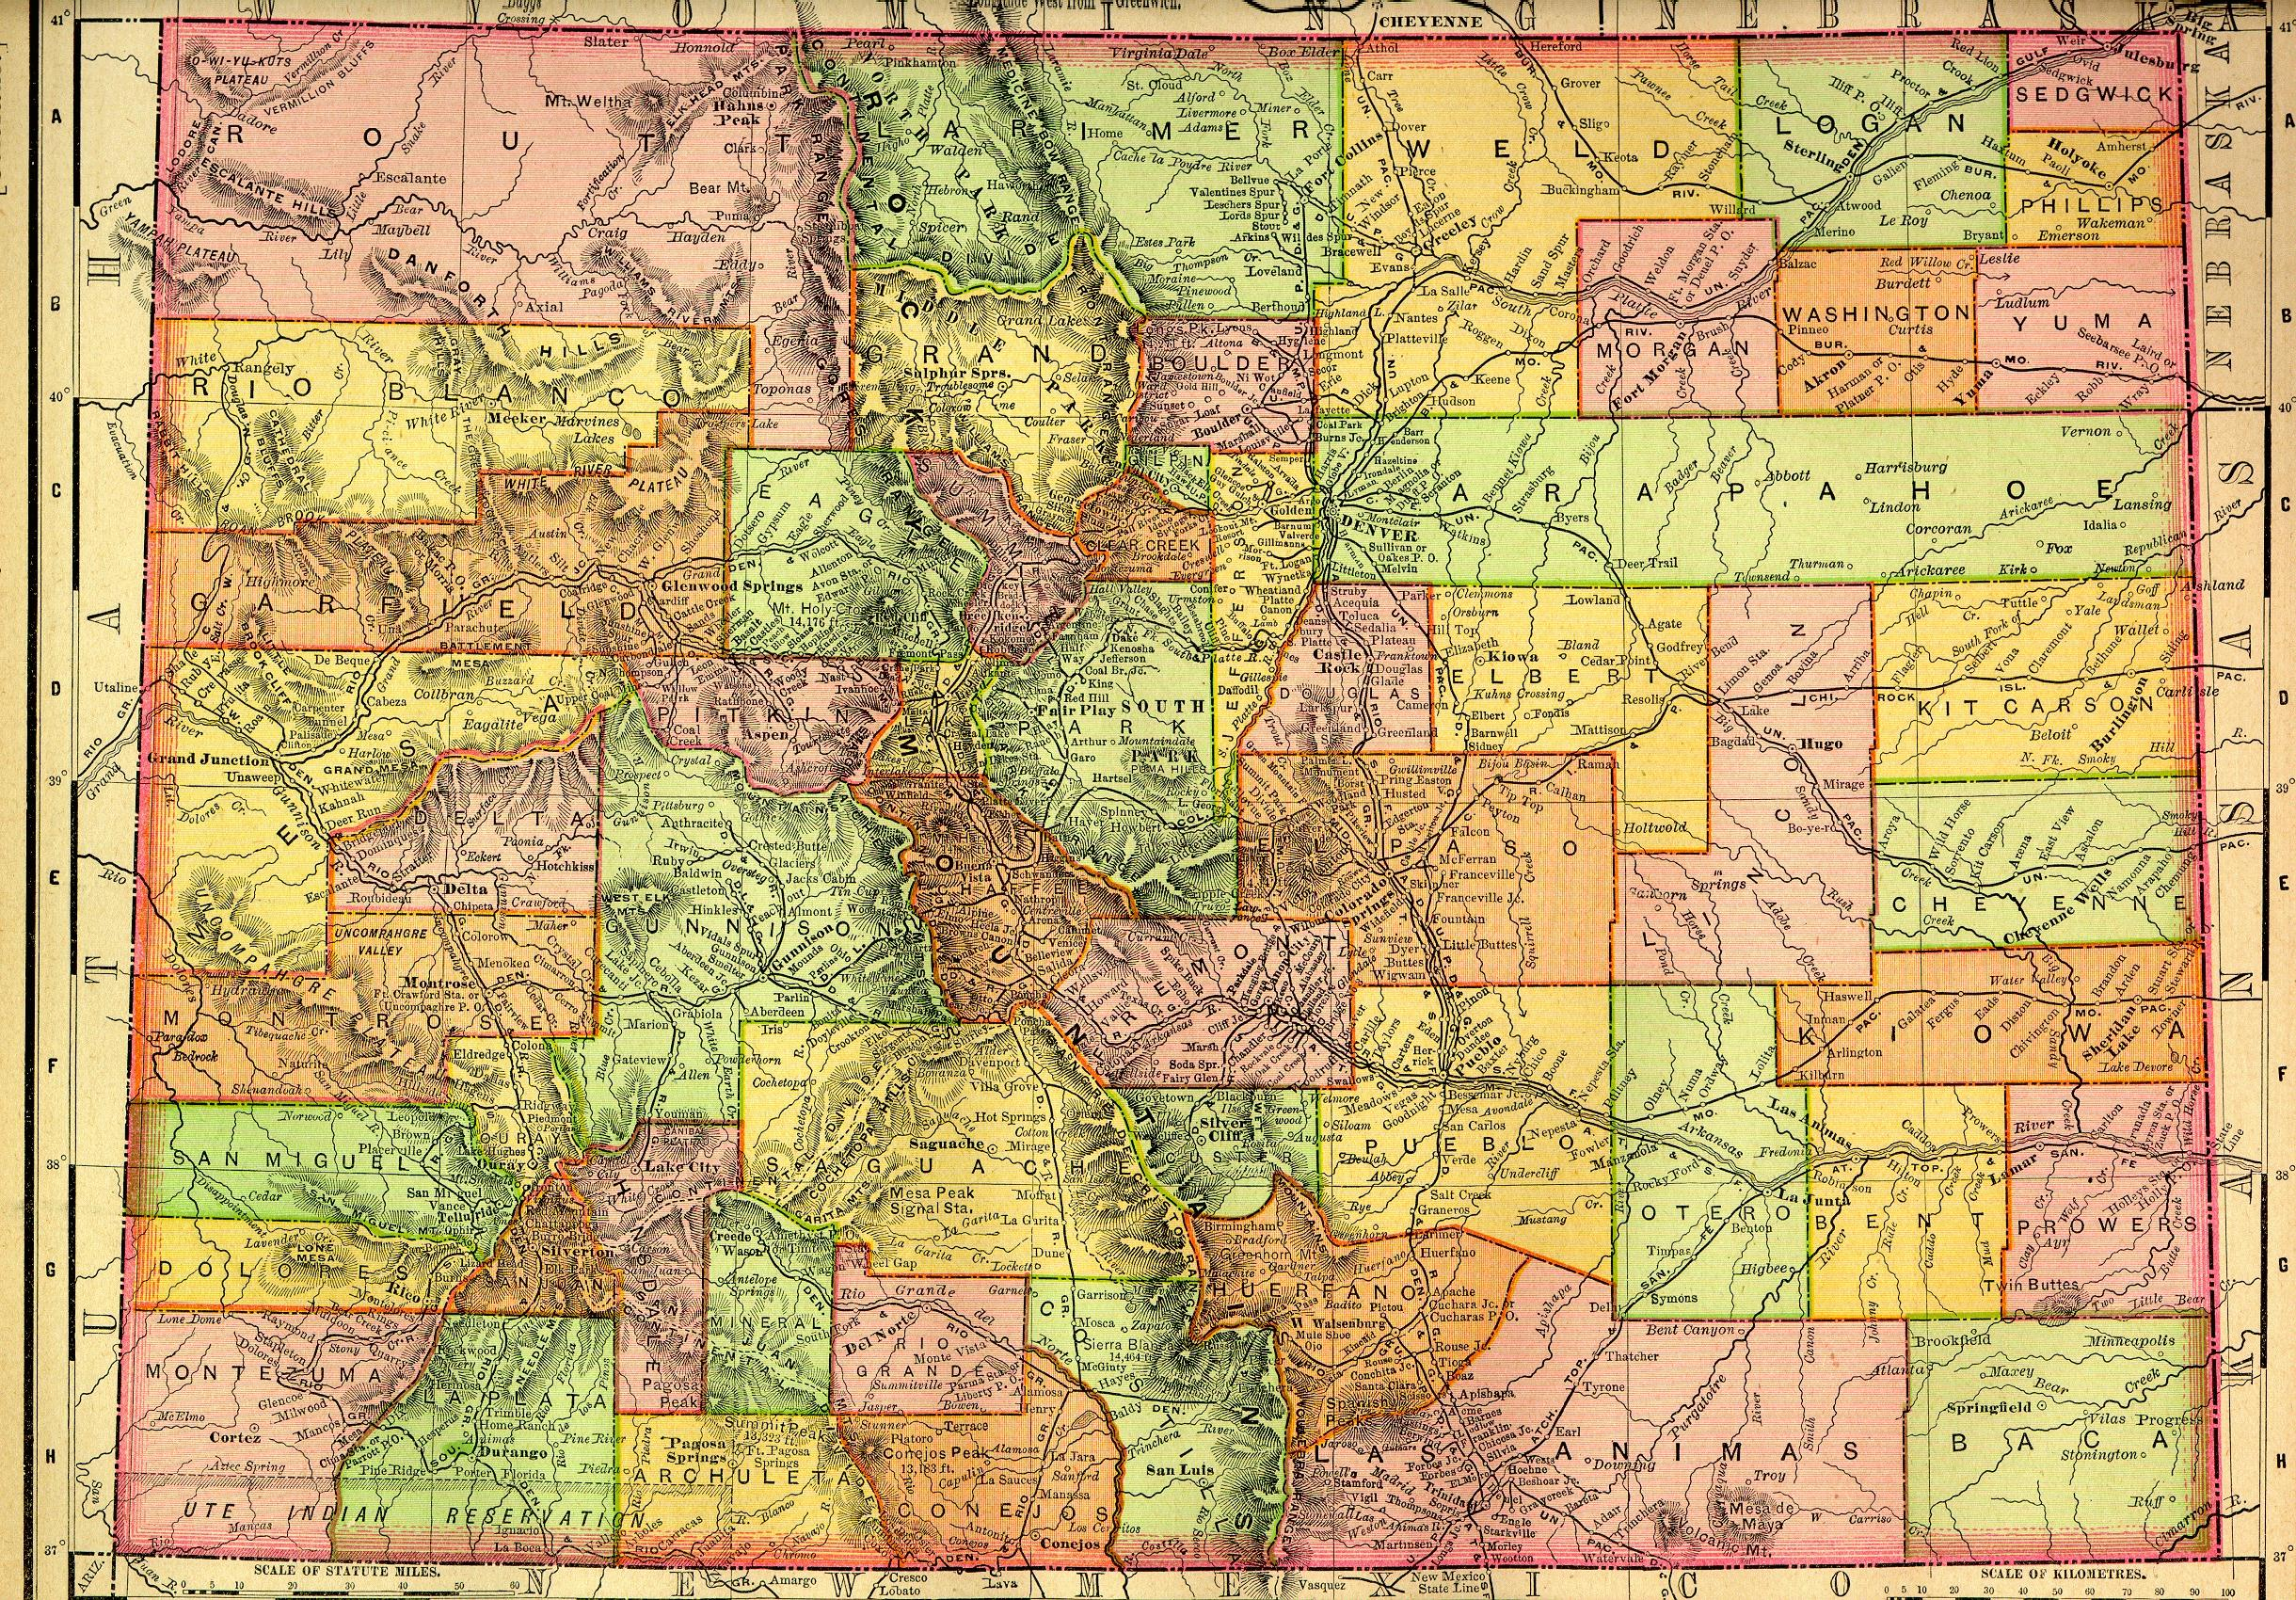 Colorado State Map Colorado Mappery - State of colorado map